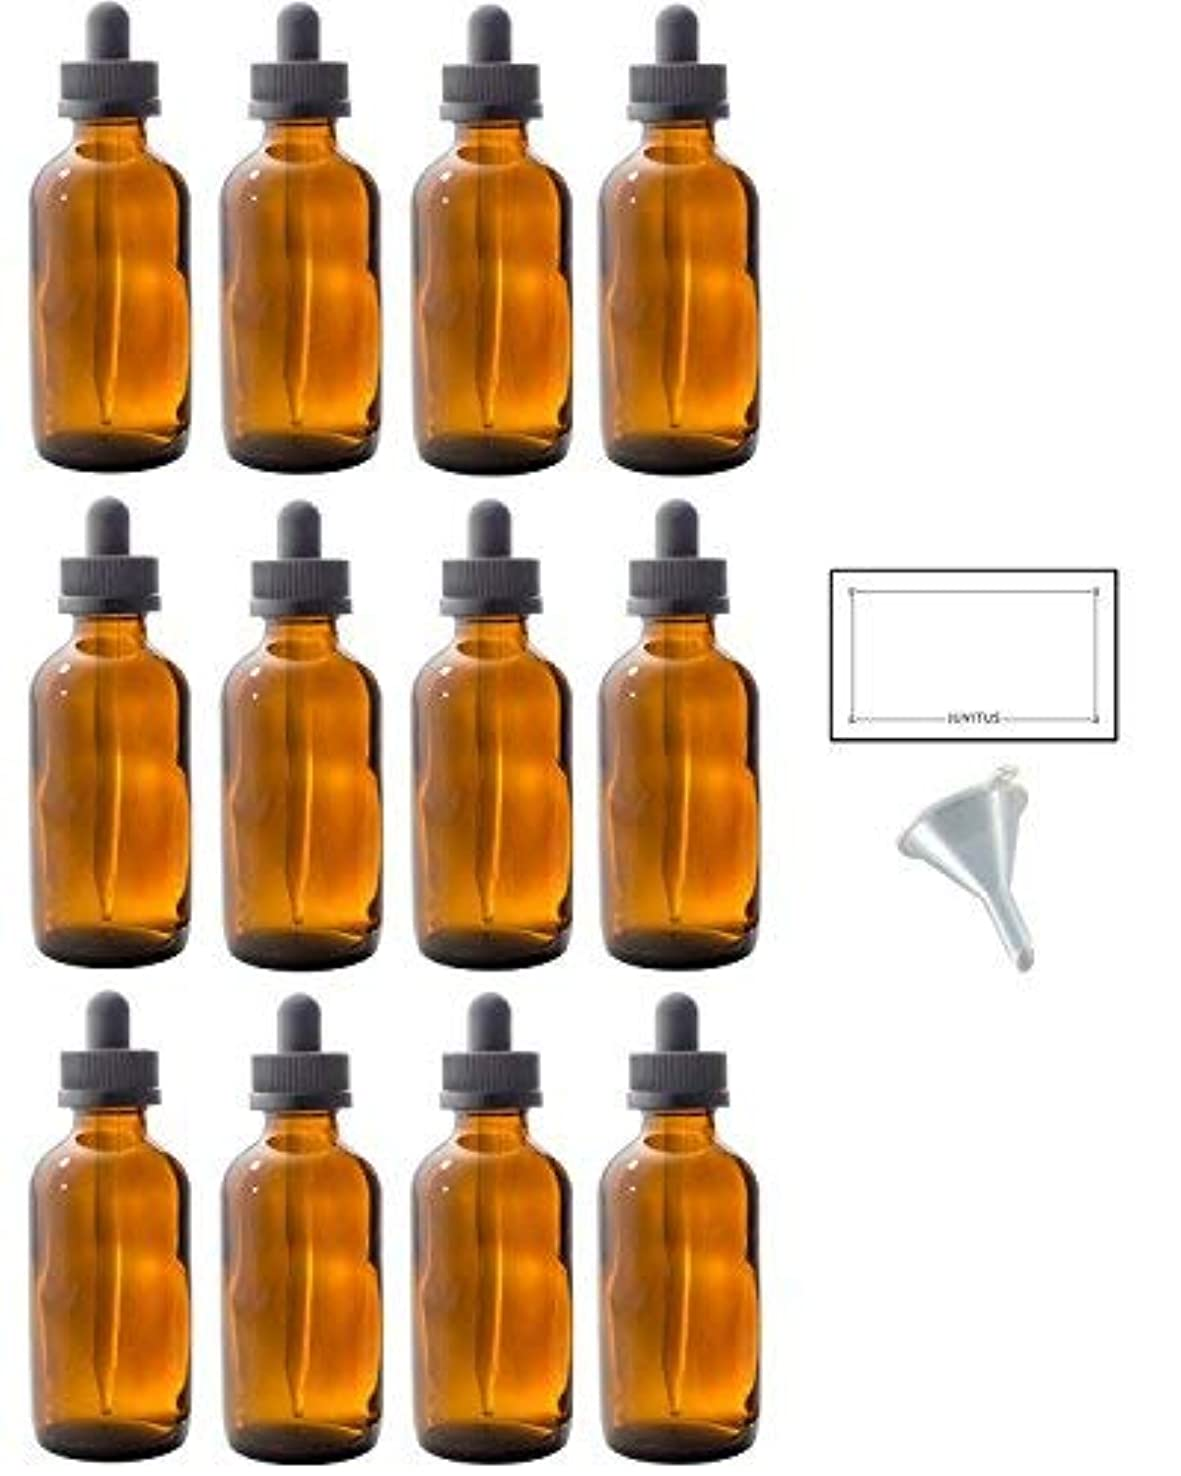 吸い込むお茶端4 oz Amber Glass Boston Round Dropper Bottle (12 pack) + Funnel and Labels for essential oils, aromatherapy, e-liquid...